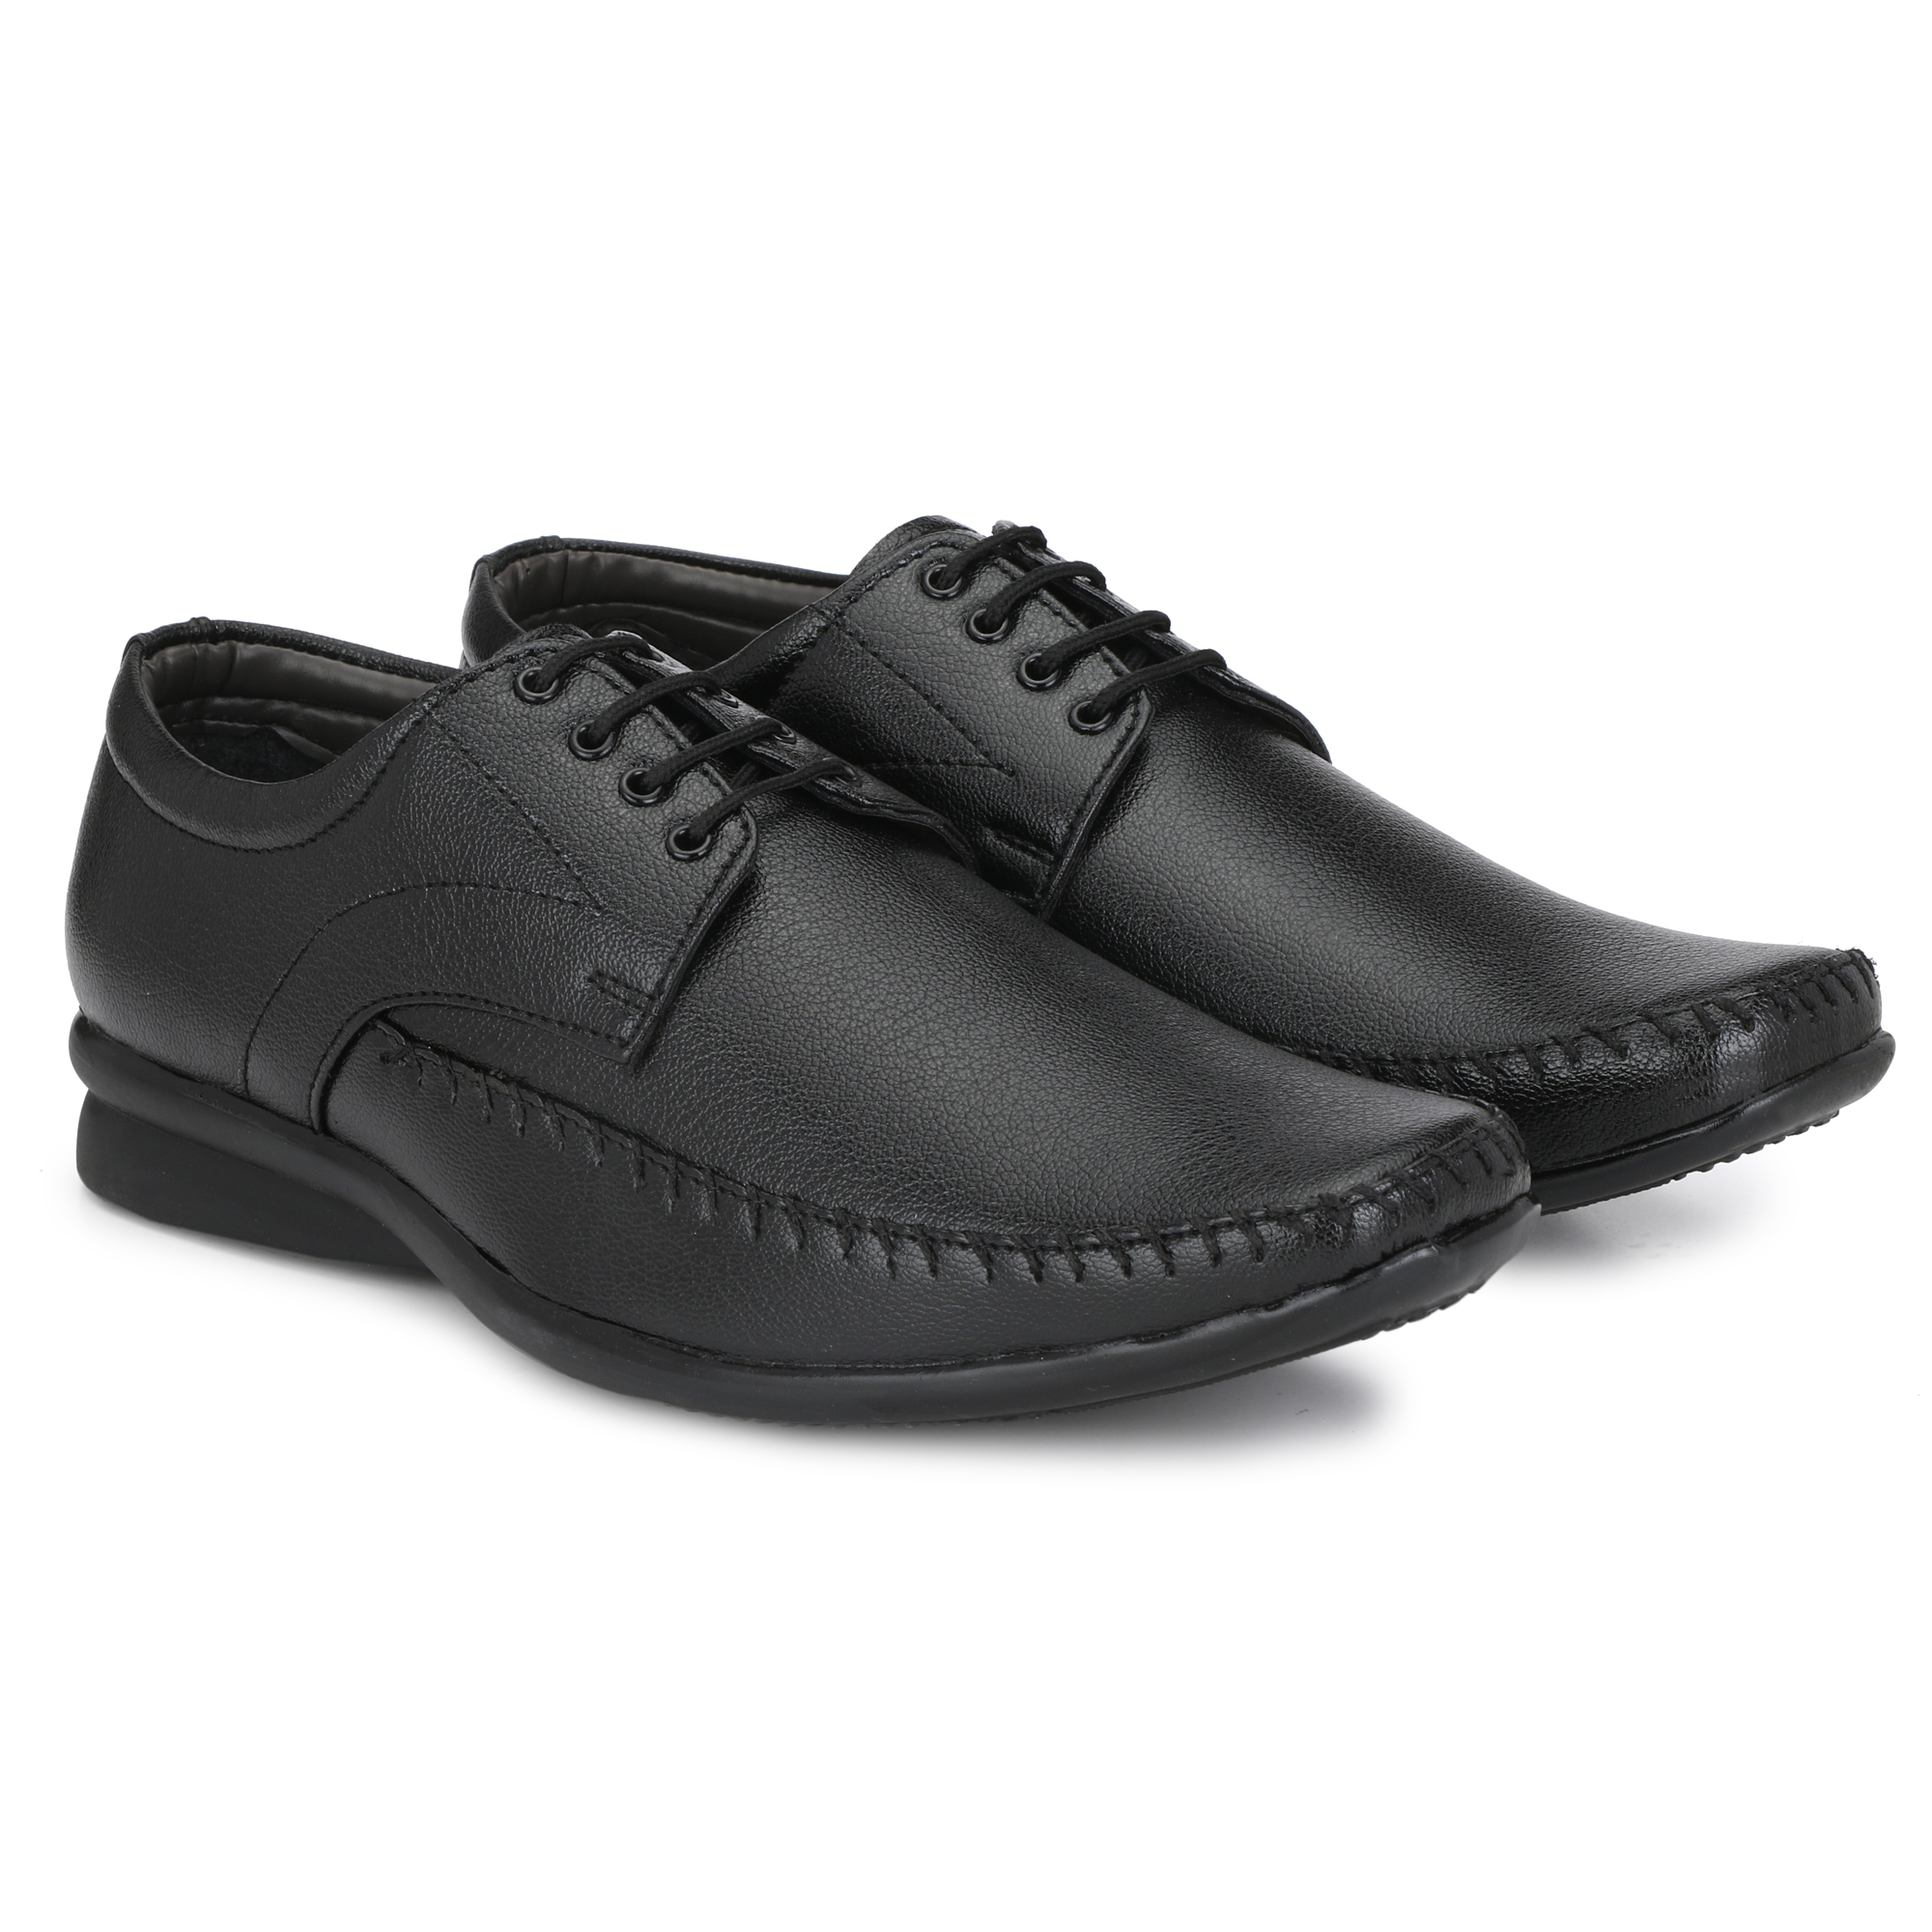 BUCIK Men's BLACK Synthetic Leather Formal Shoes BCK1061-BLACK (Black,6-10,8 PAIR)